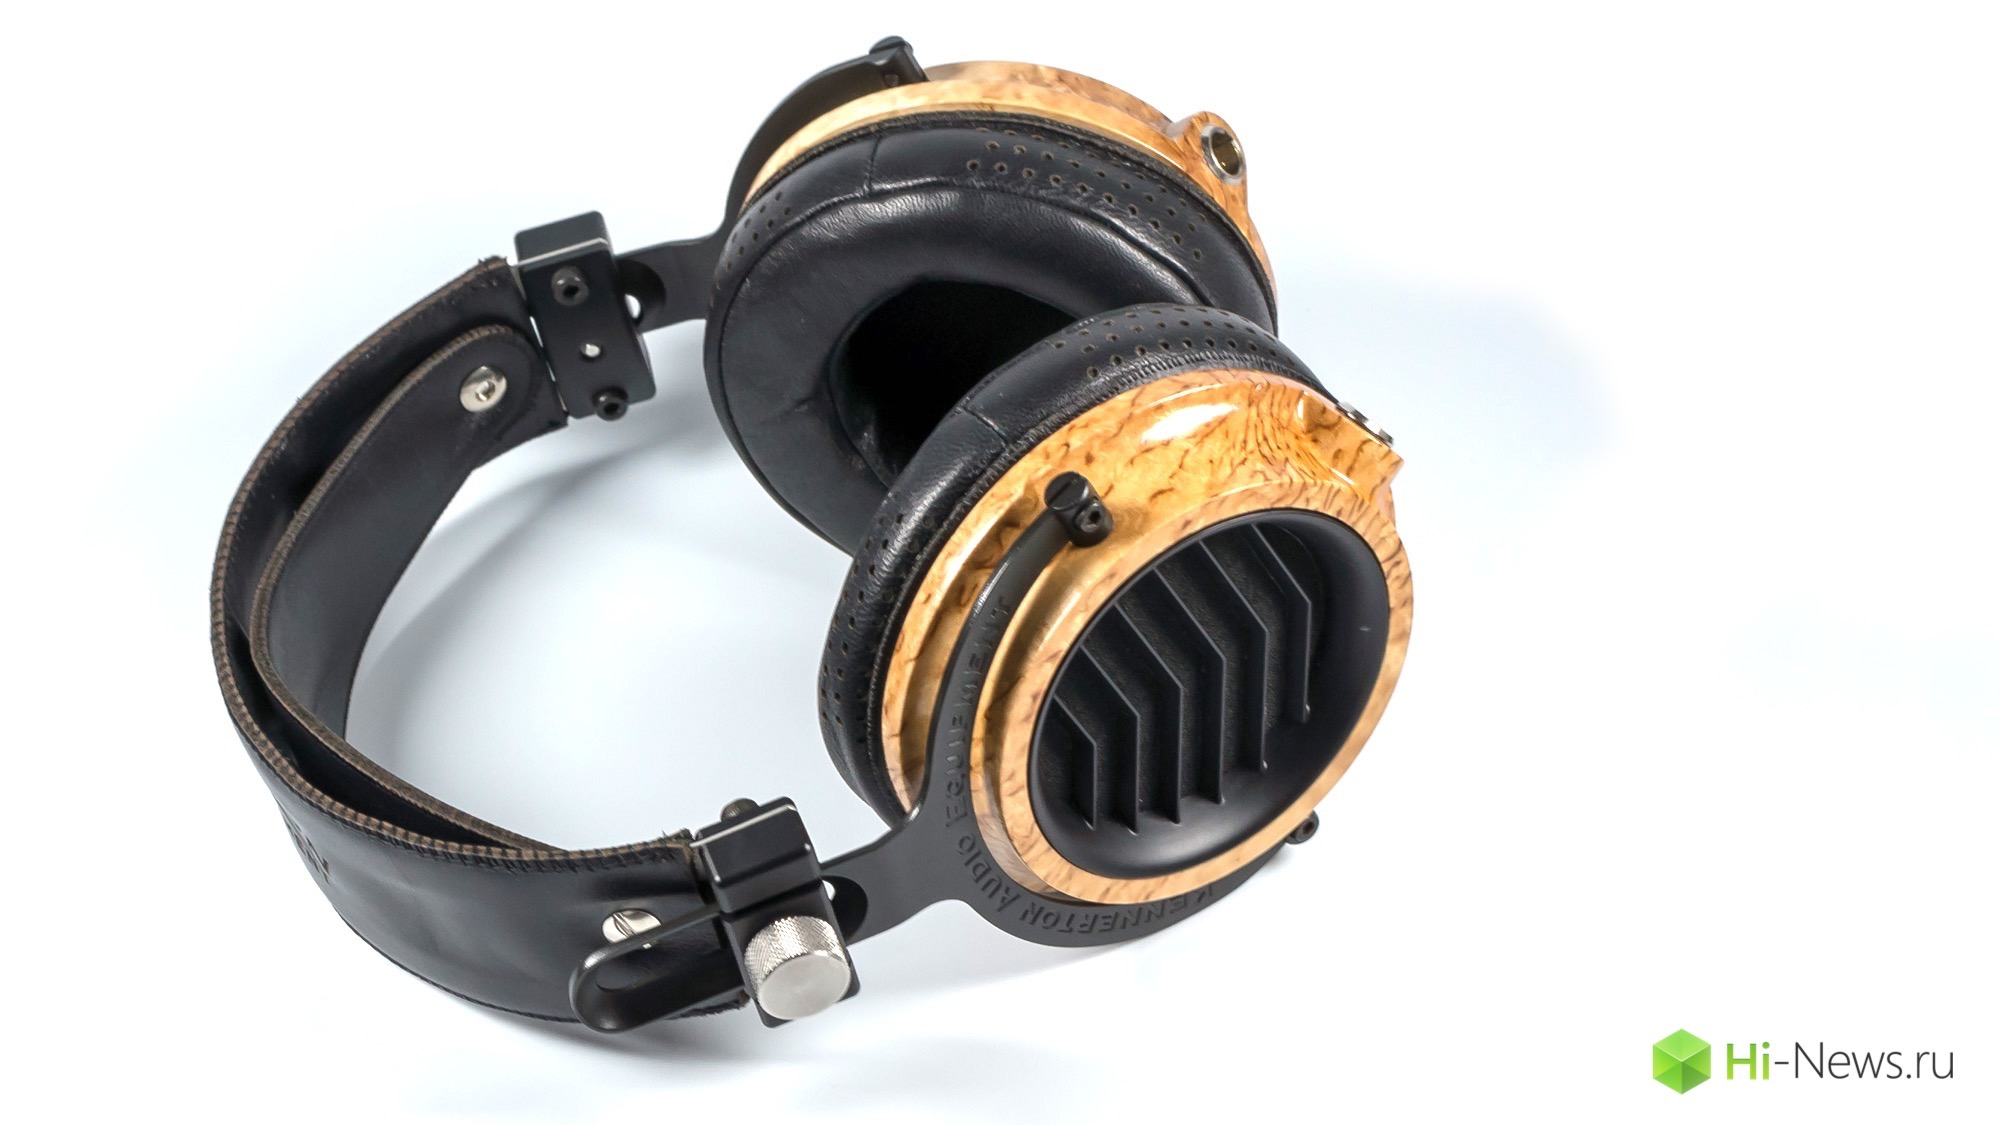 Review headphones Kennerton Odin — now from the wood of Yggdrasil